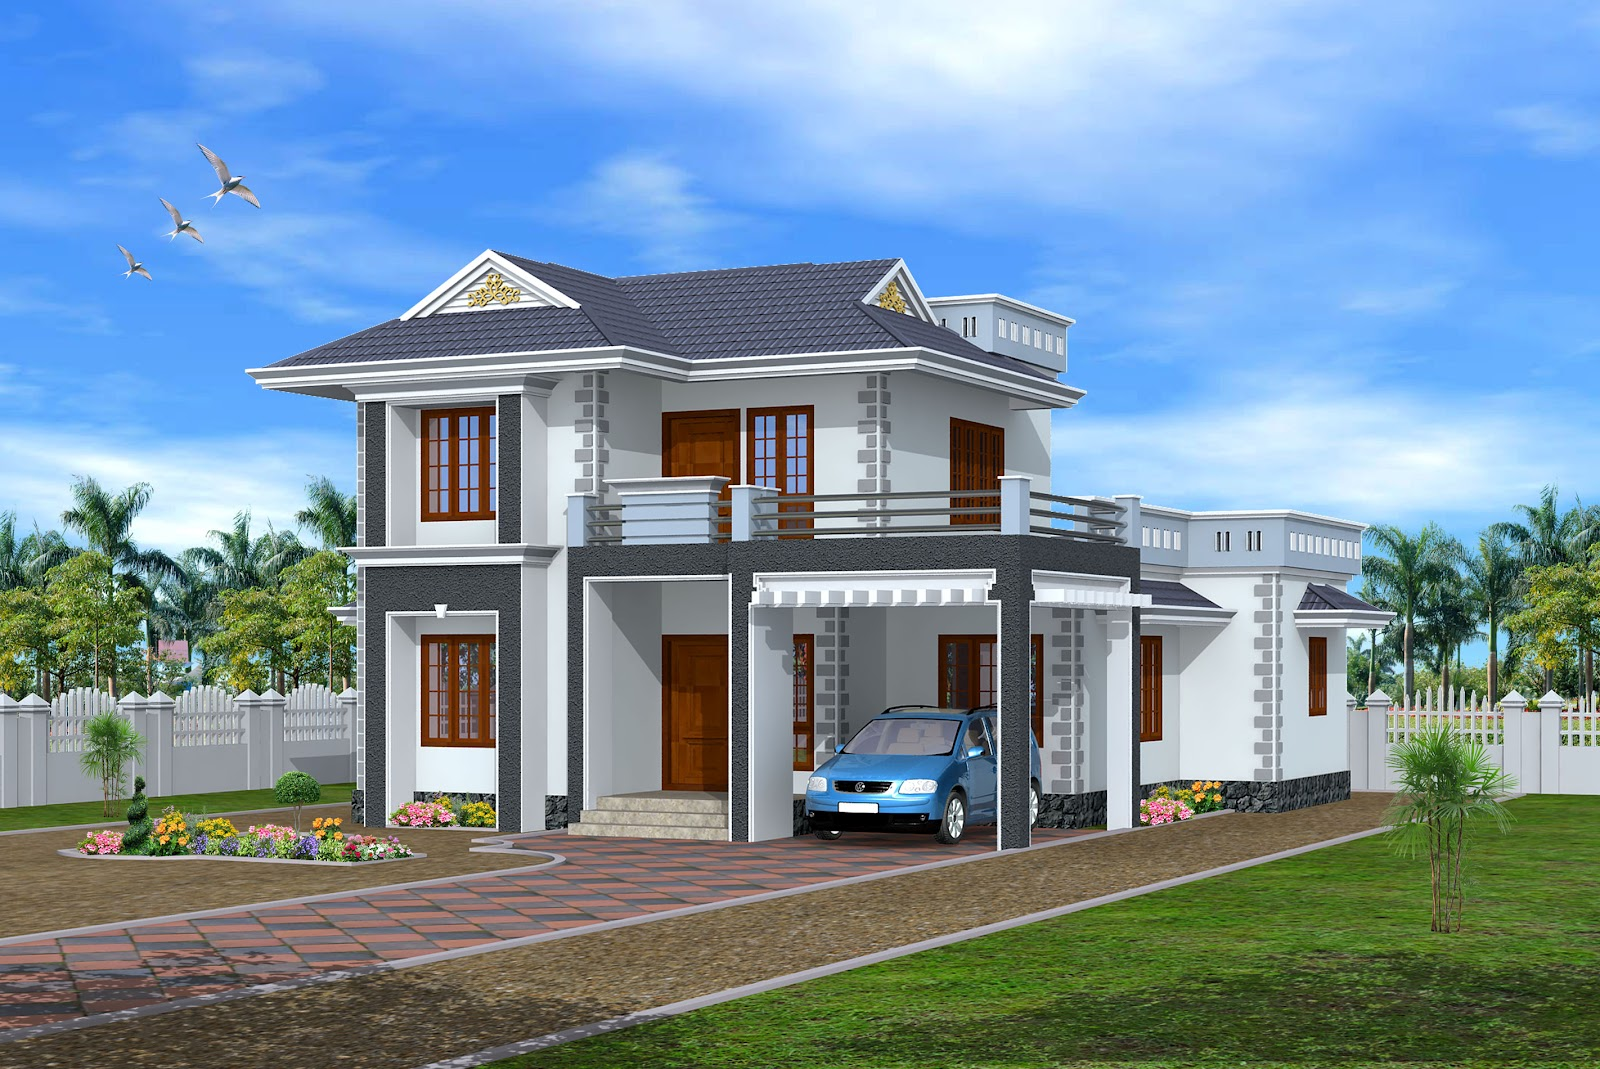 New home designs latest modern homes exterior designs views Home design dream house